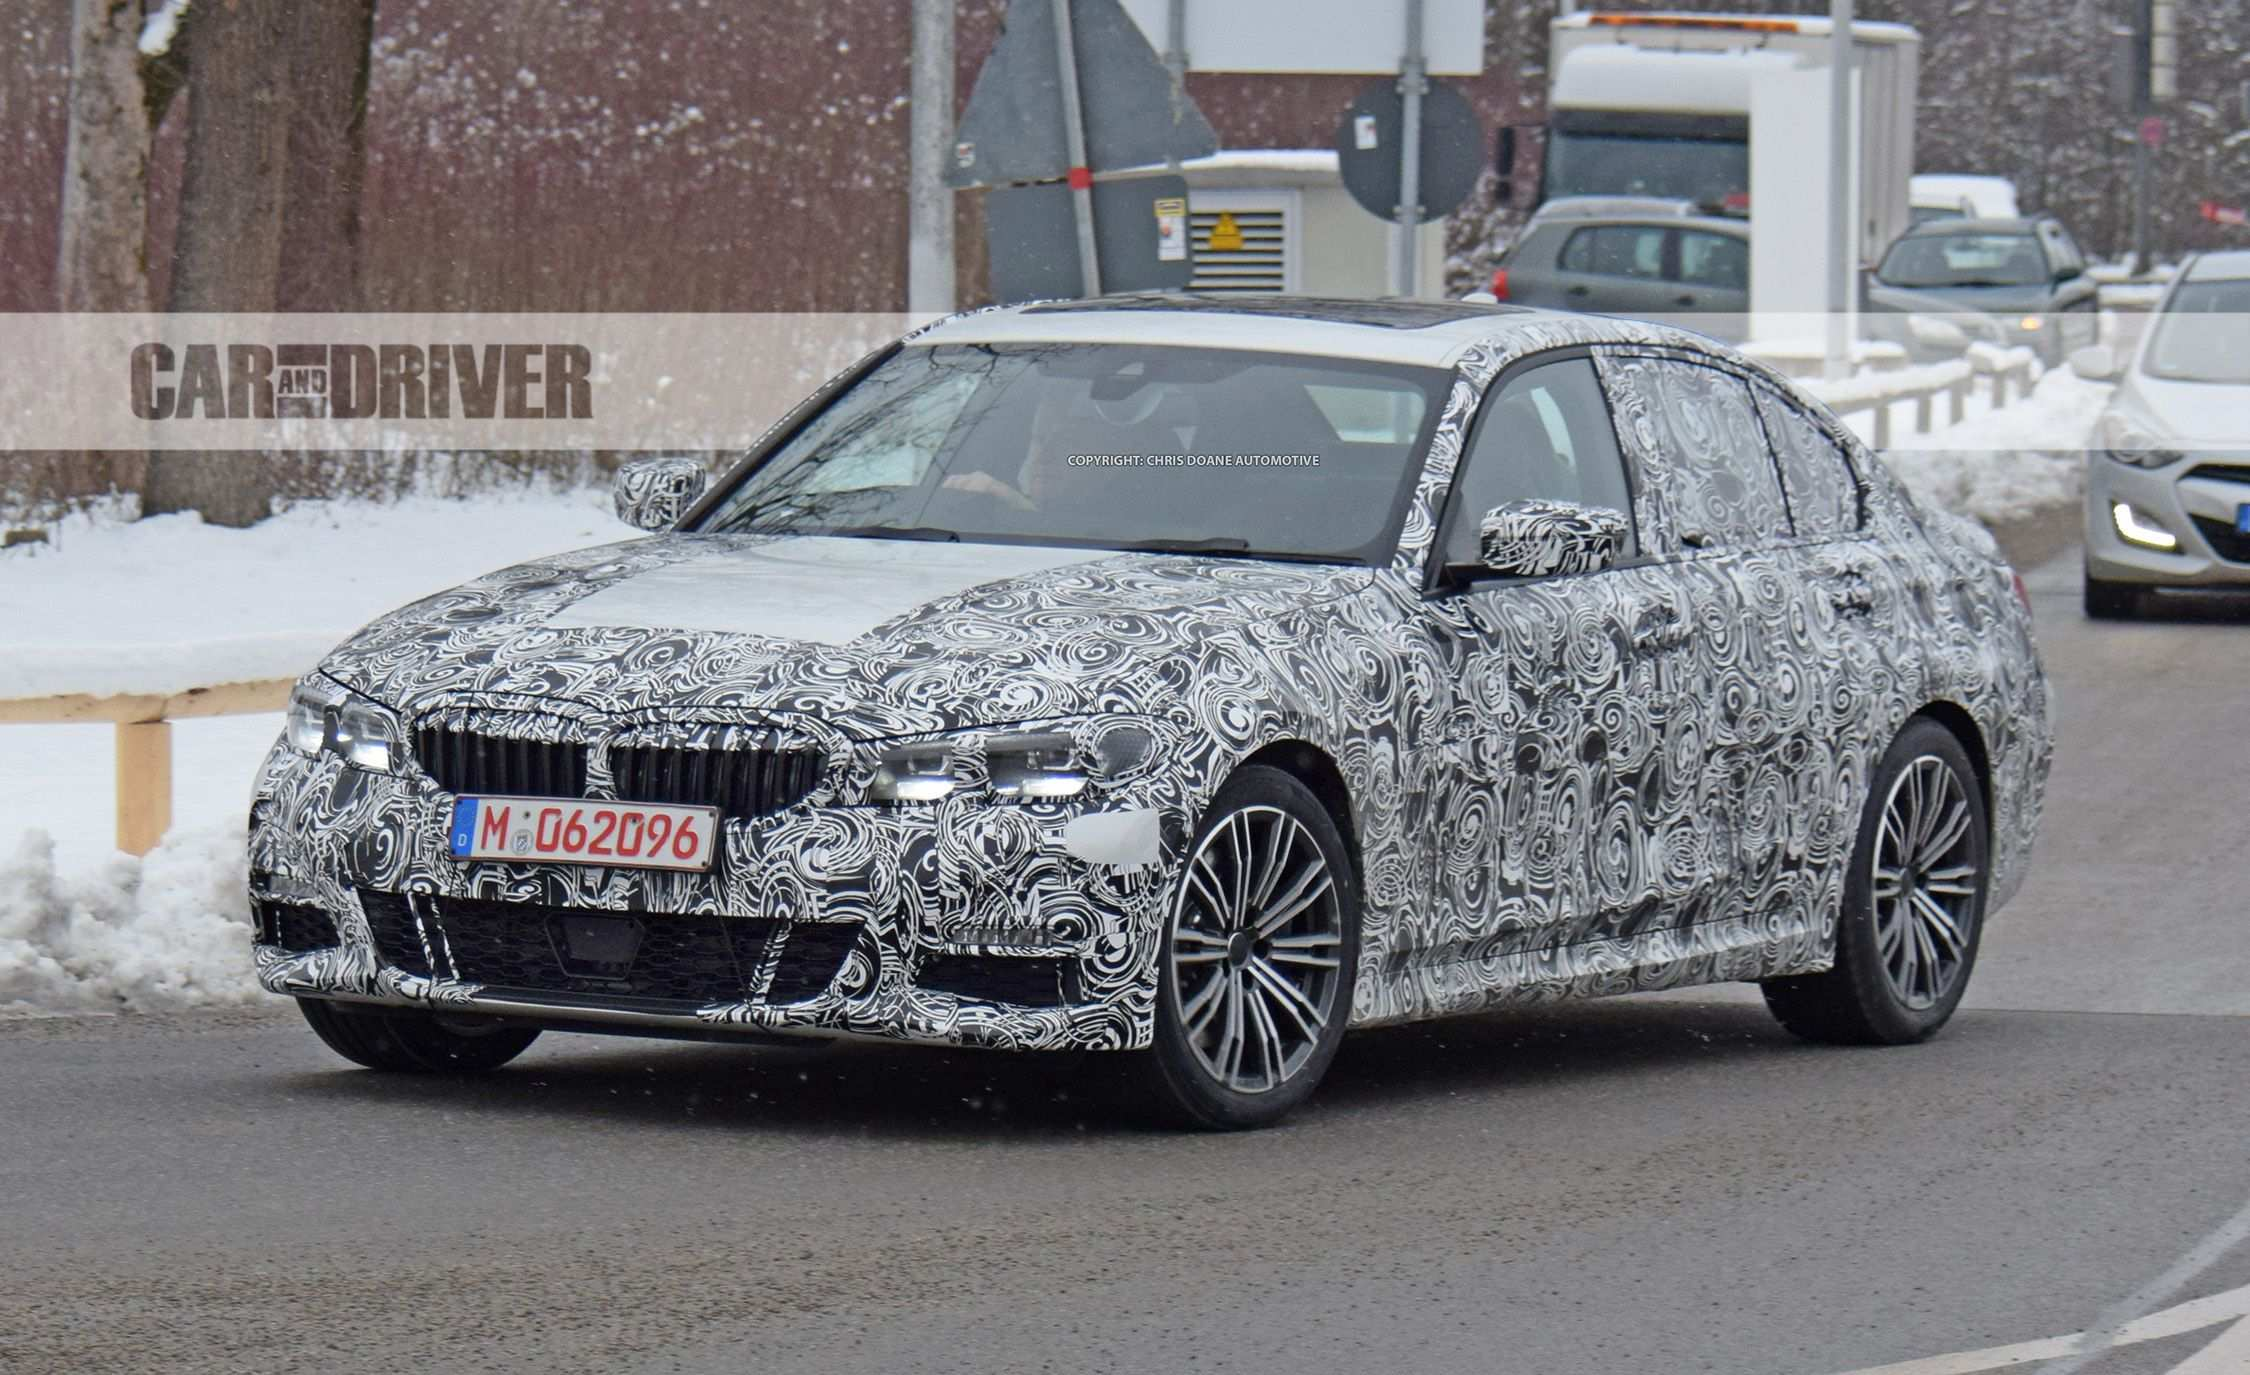 69 Best Review 2019 Bmw 3 Series Electric Spy Shoot New Concept by 2019 Bmw 3 Series Electric Spy Shoot